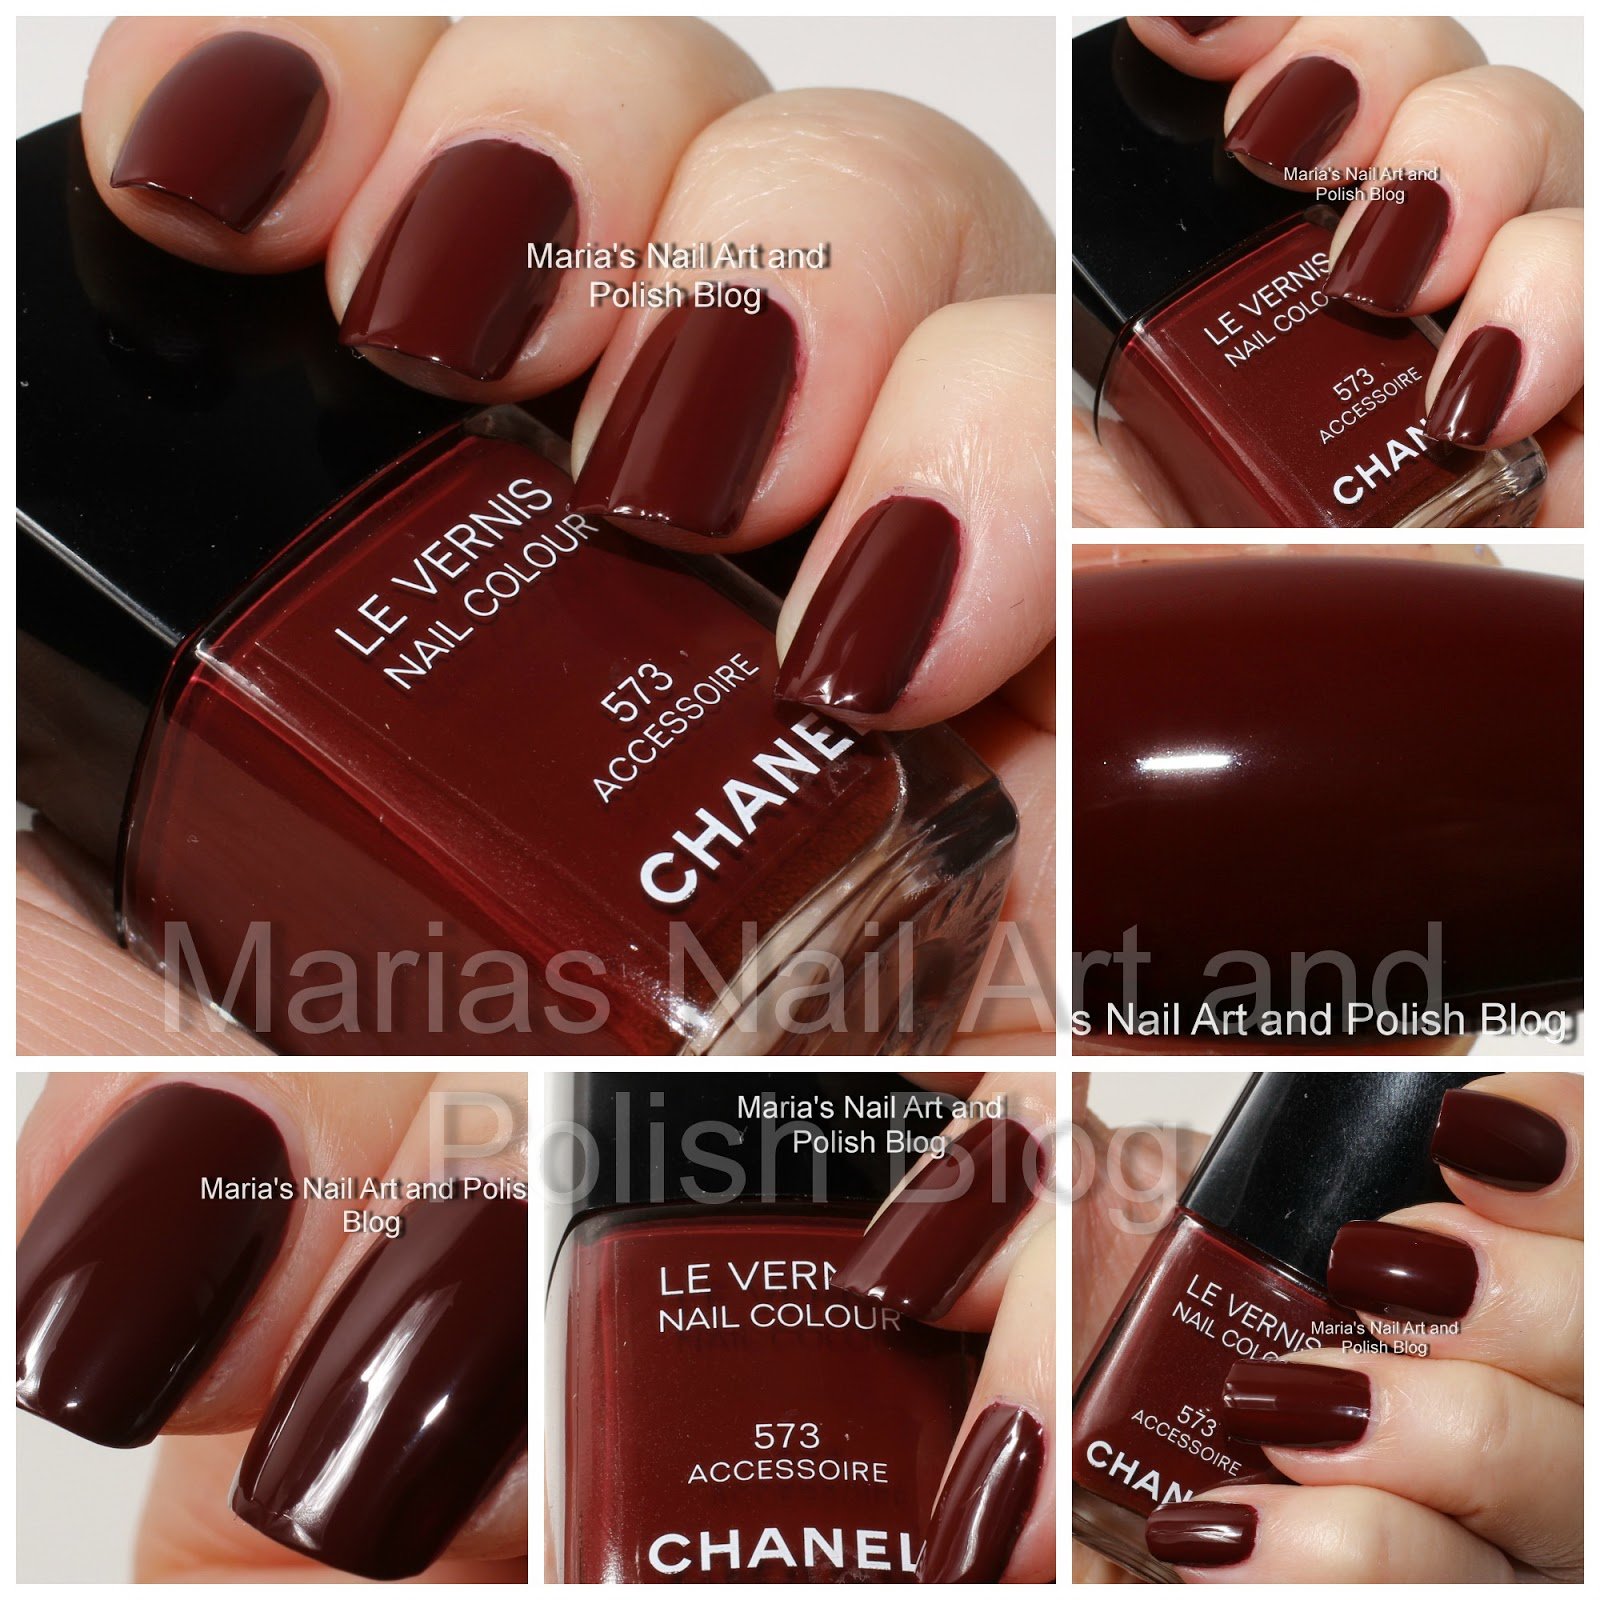 Marias Nail Art And Polish Blog Flushed With Stripes And: Marias Nail Art And Polish Blog: Chanel Accessoire 573